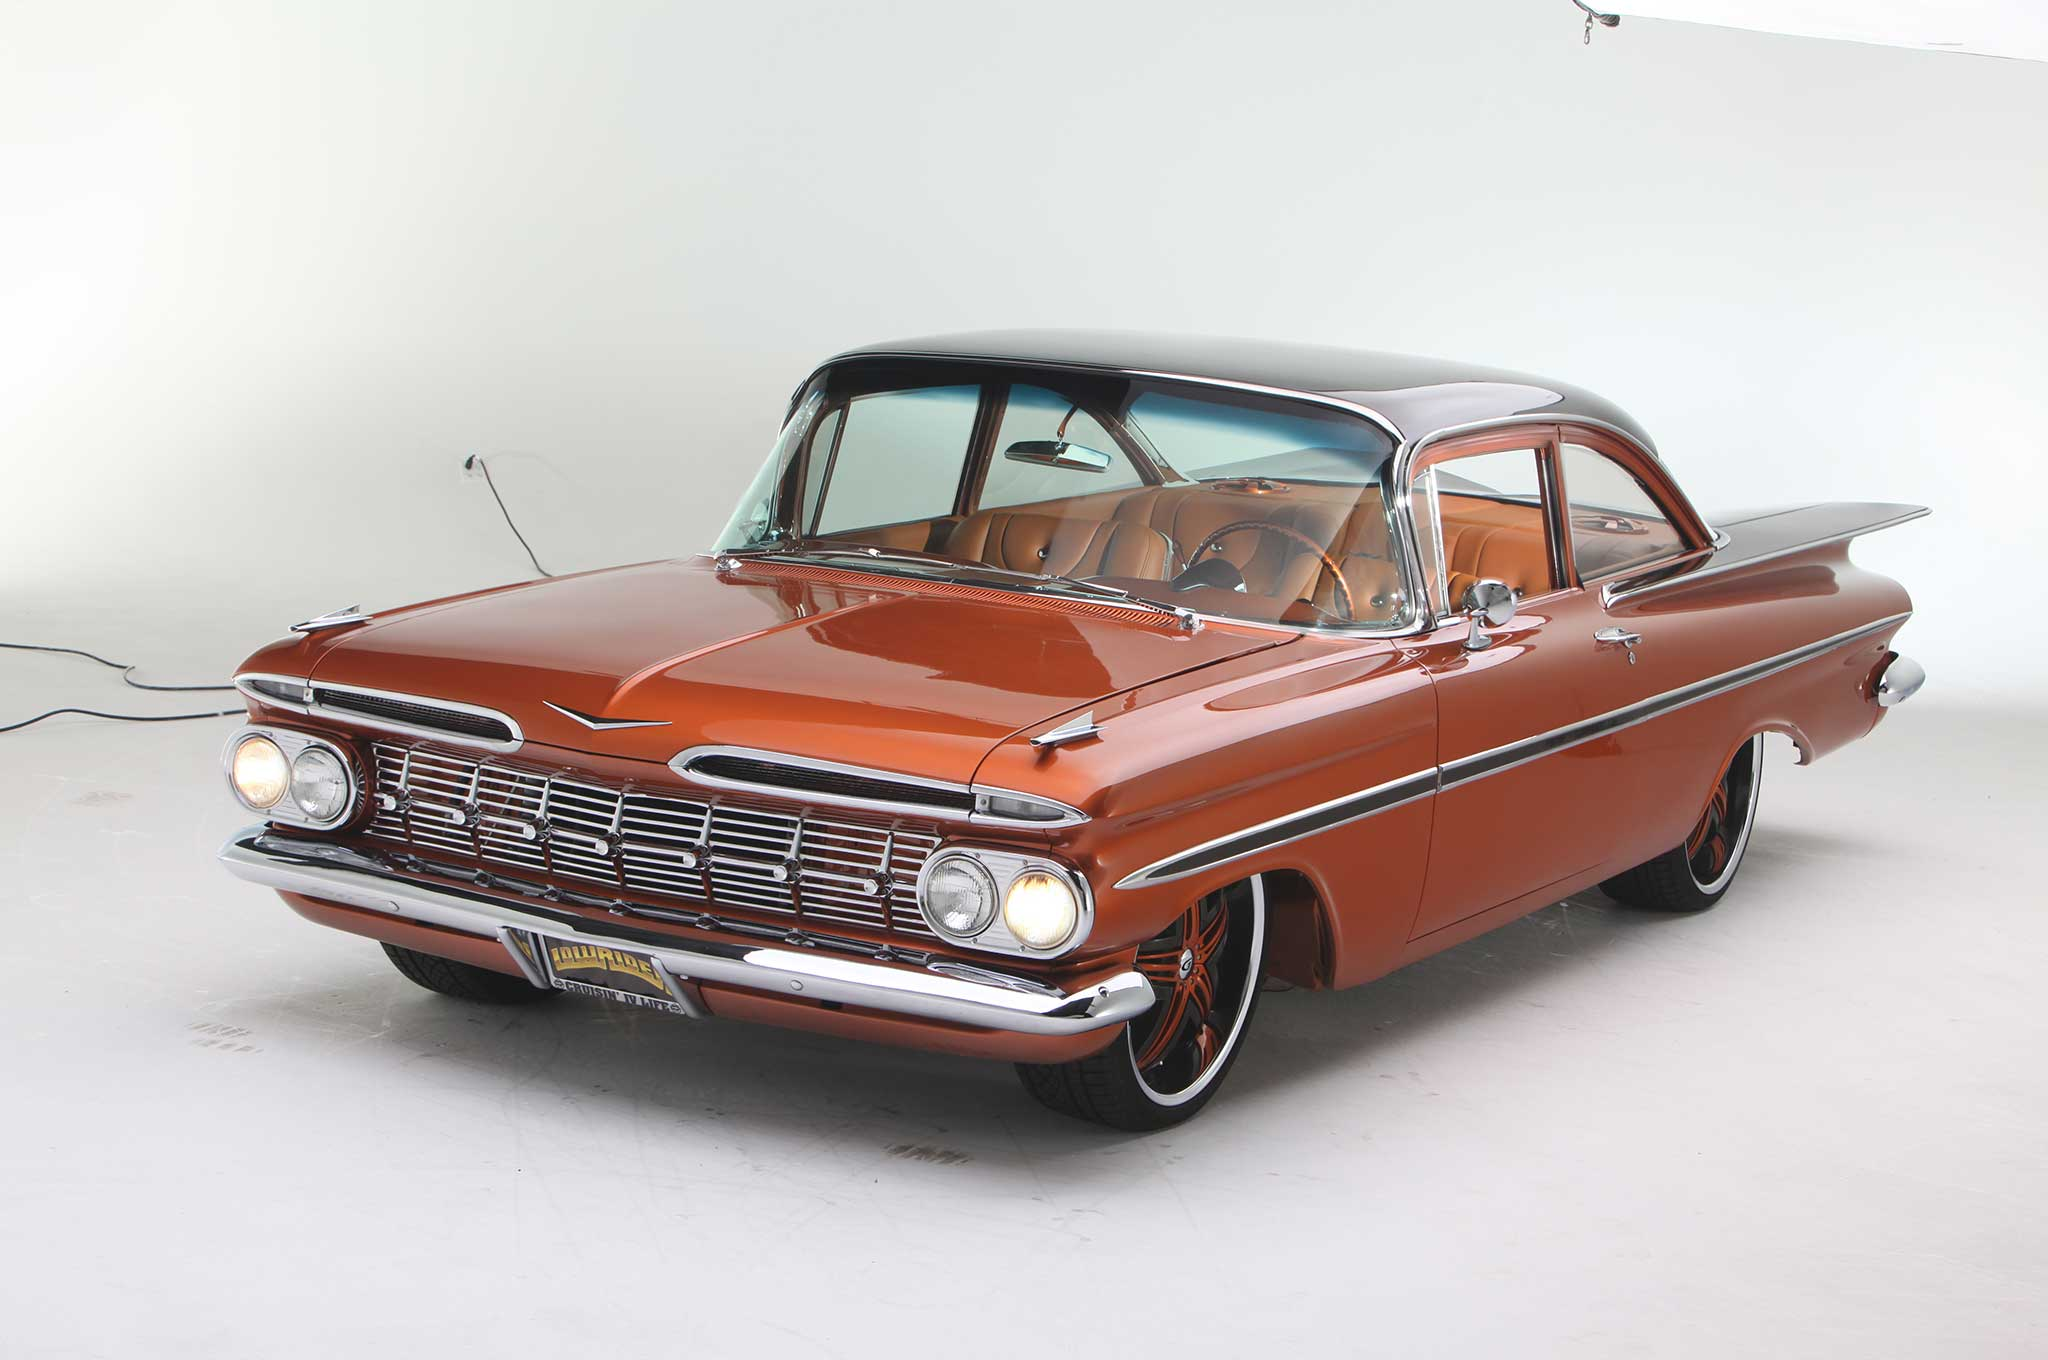 1959 Chevrolet Bel Air The Perfect Couple Lowrider